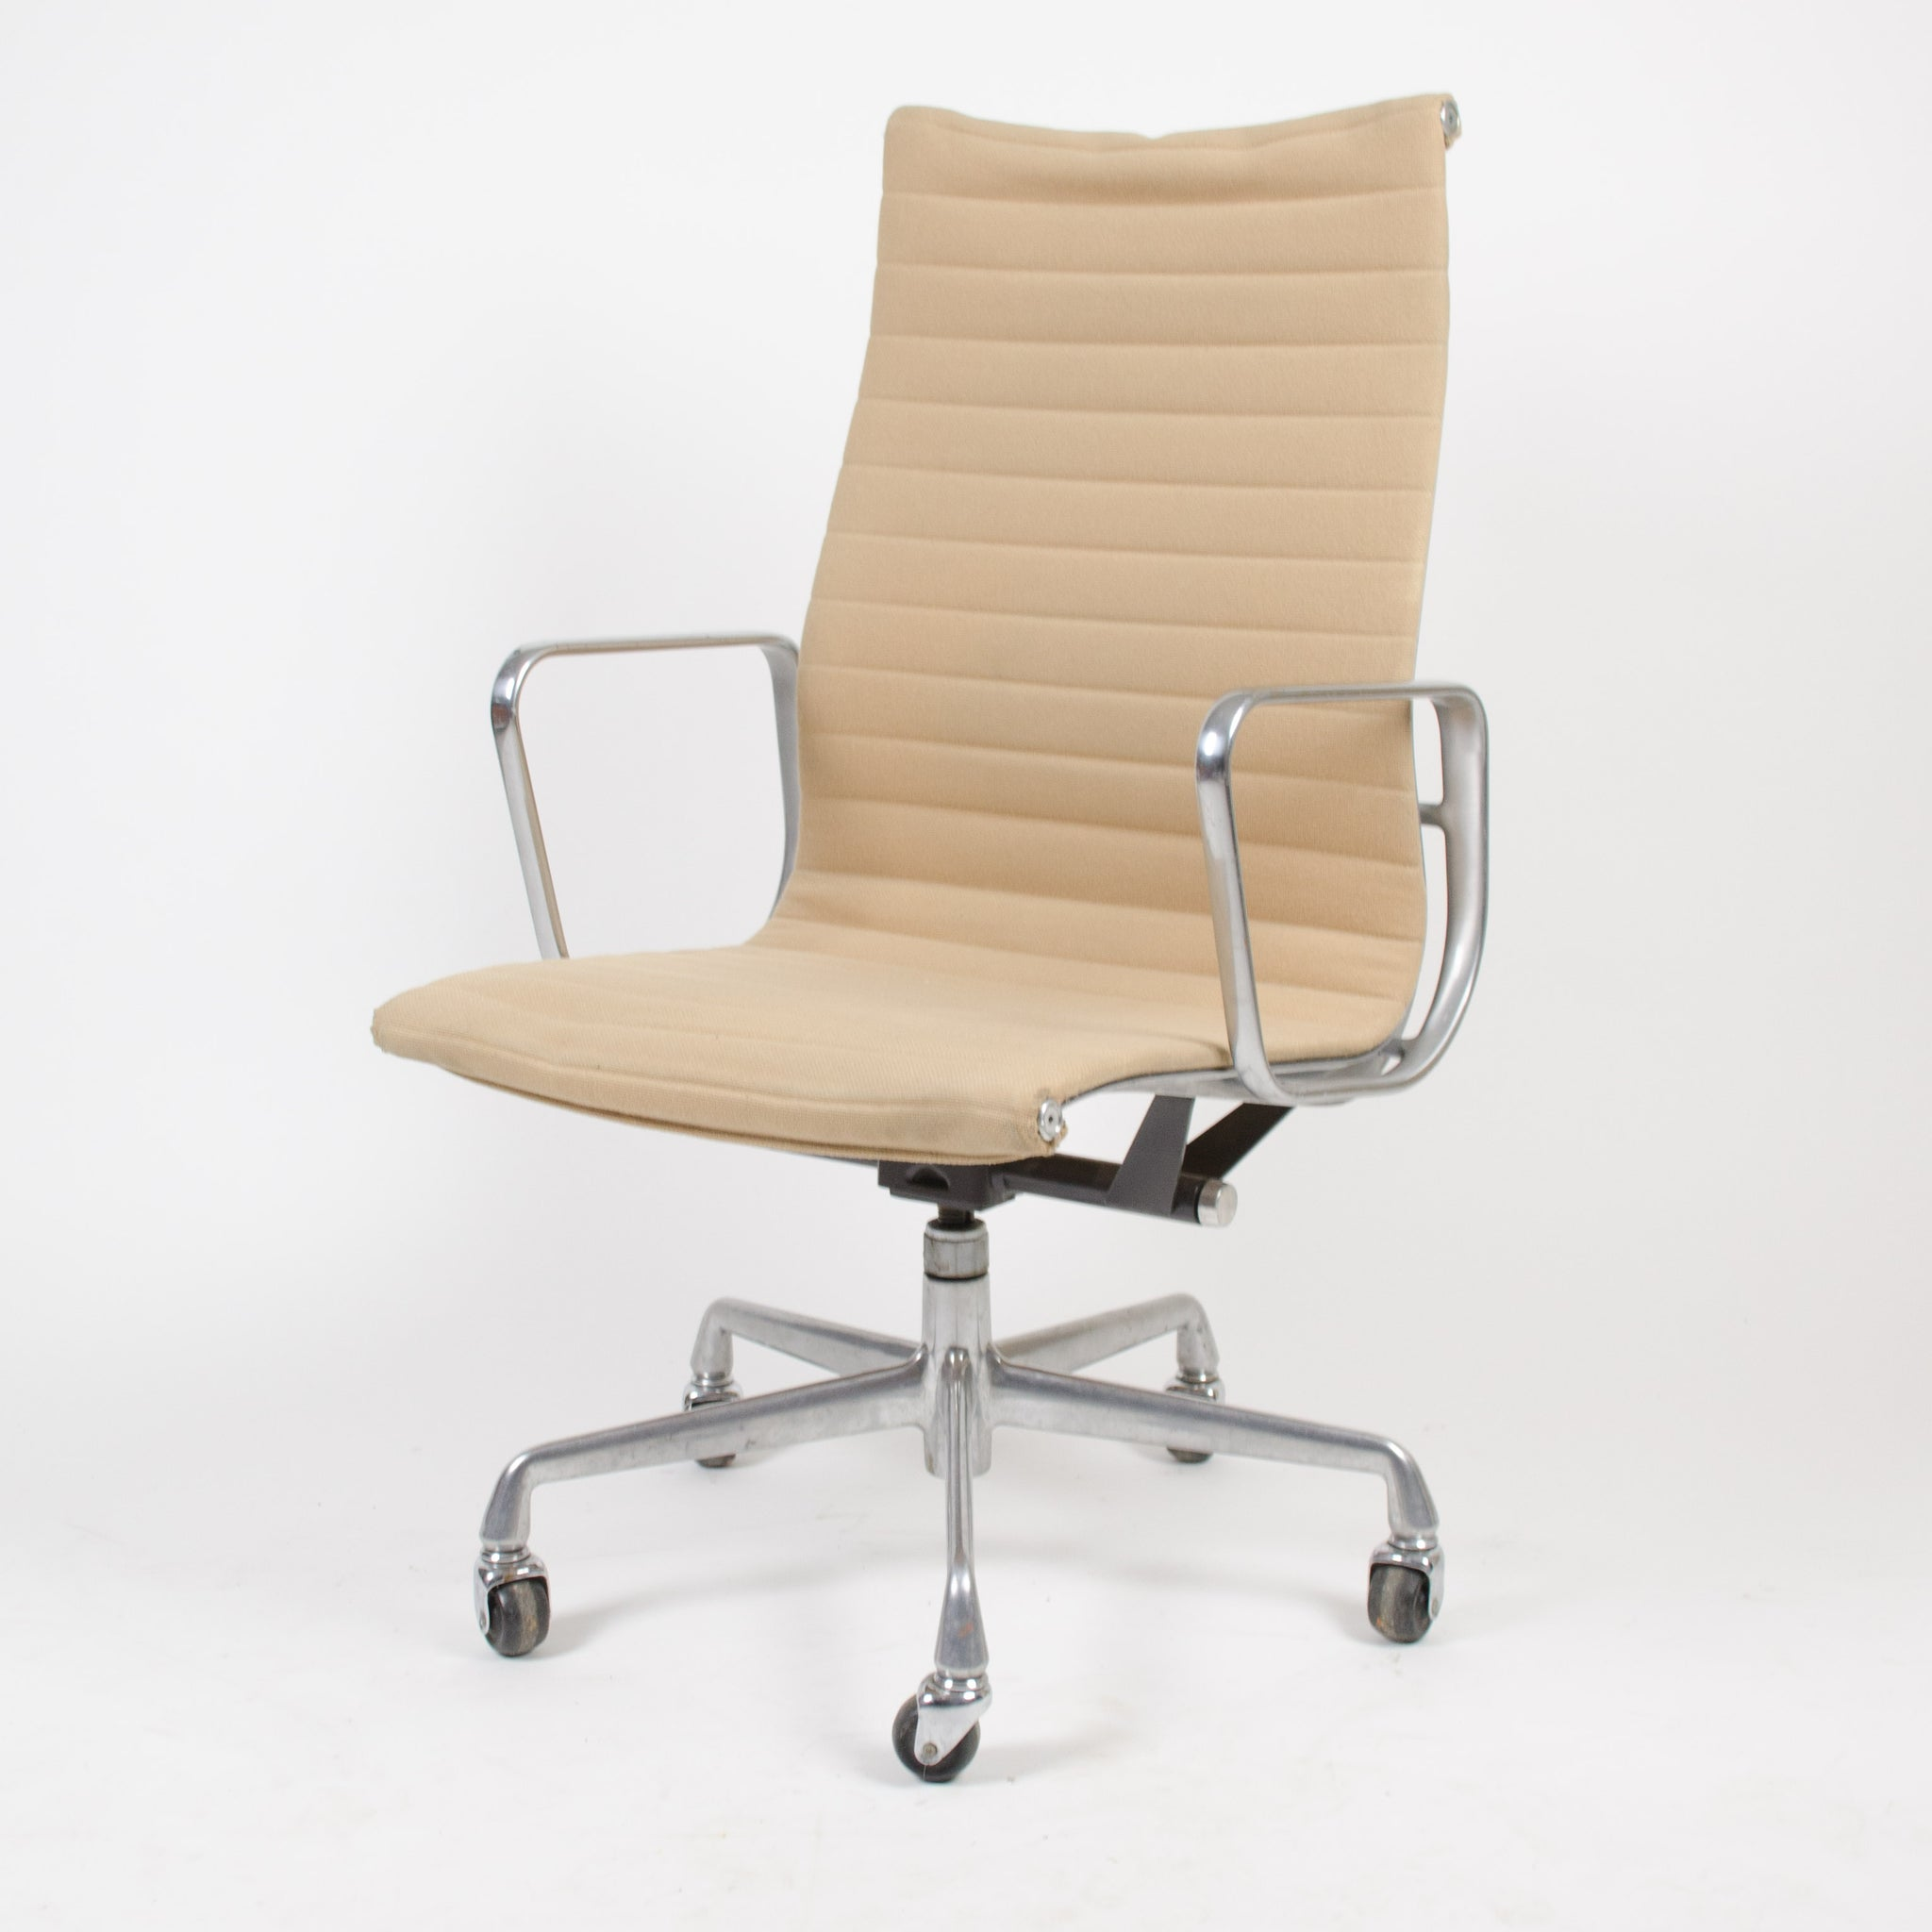 SOLD Herman Miller Eames Aluminum Group High Back Desk Chair Tan Hopsack 90's